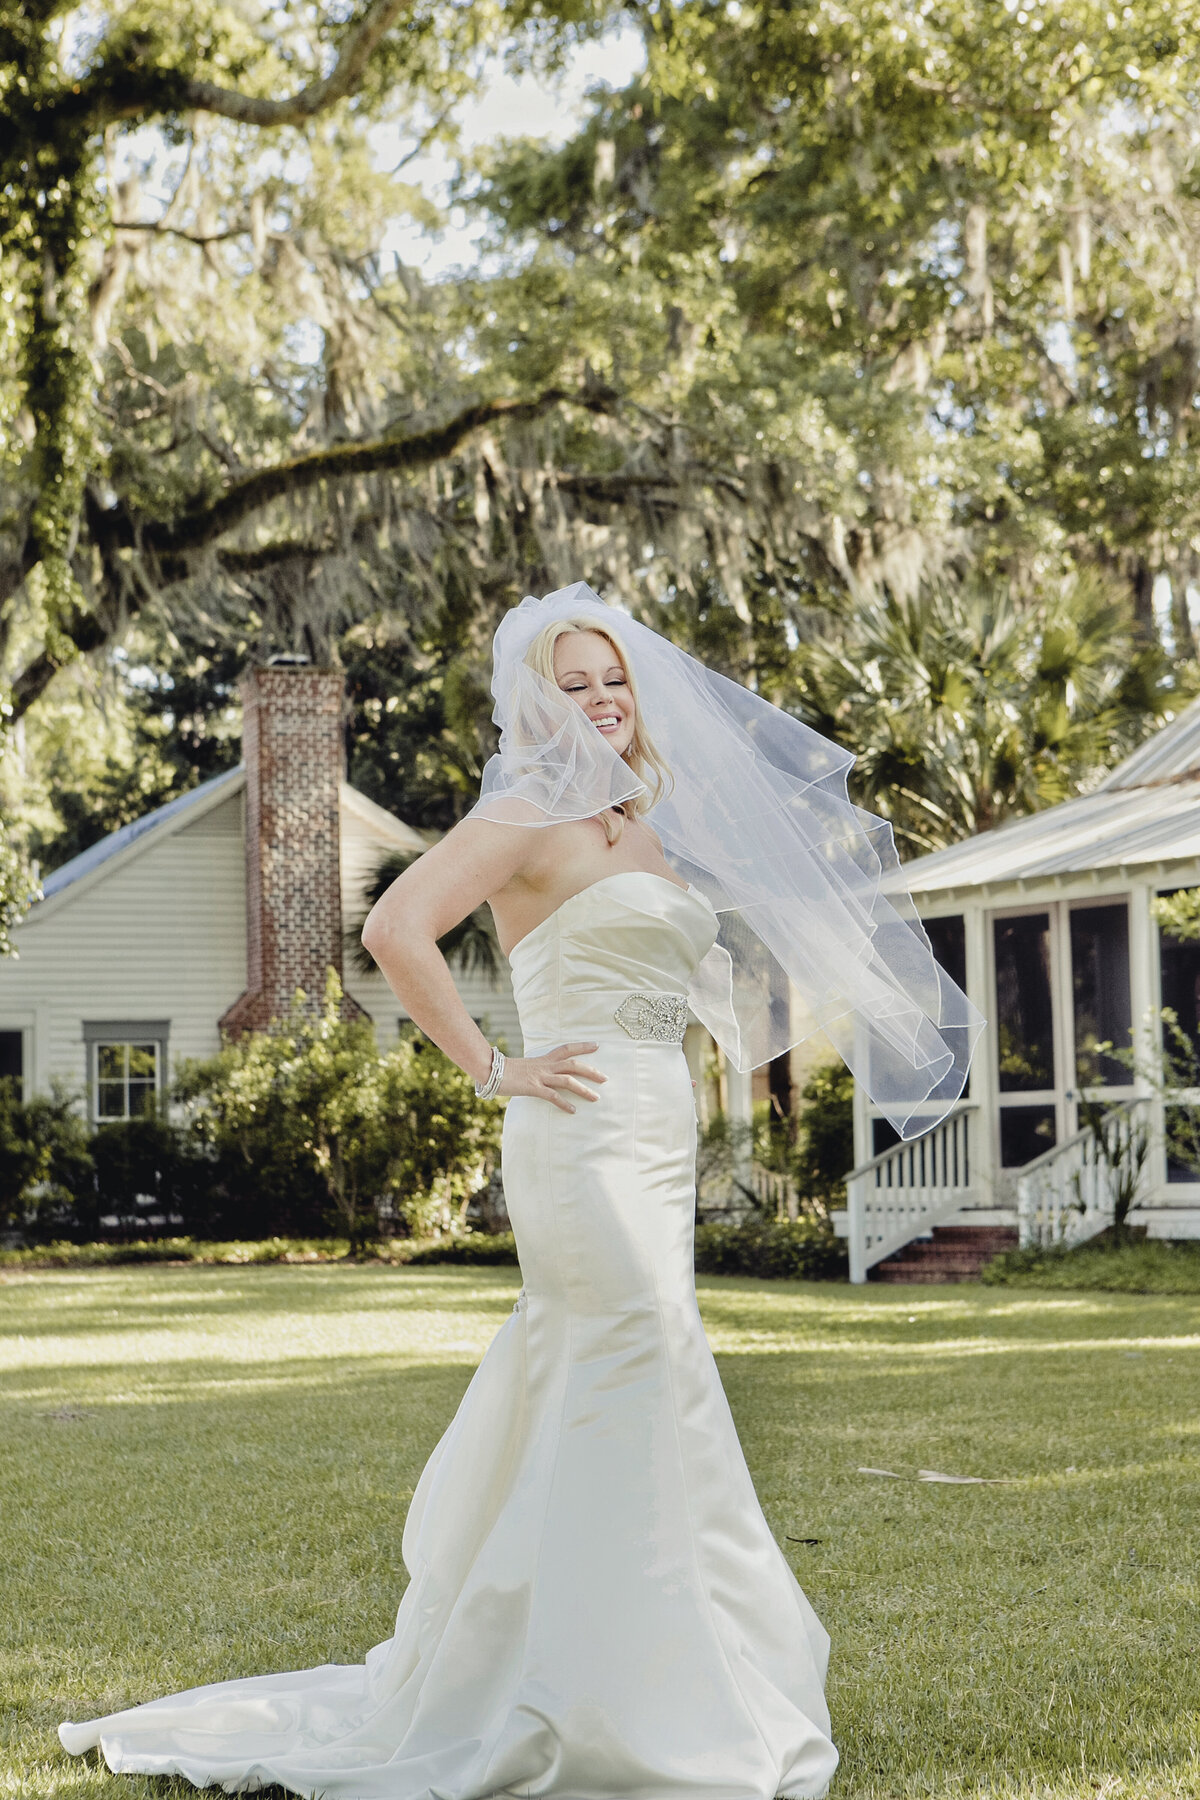 Lisa-Staff-Photographer-Hilton Head-photographer-1110